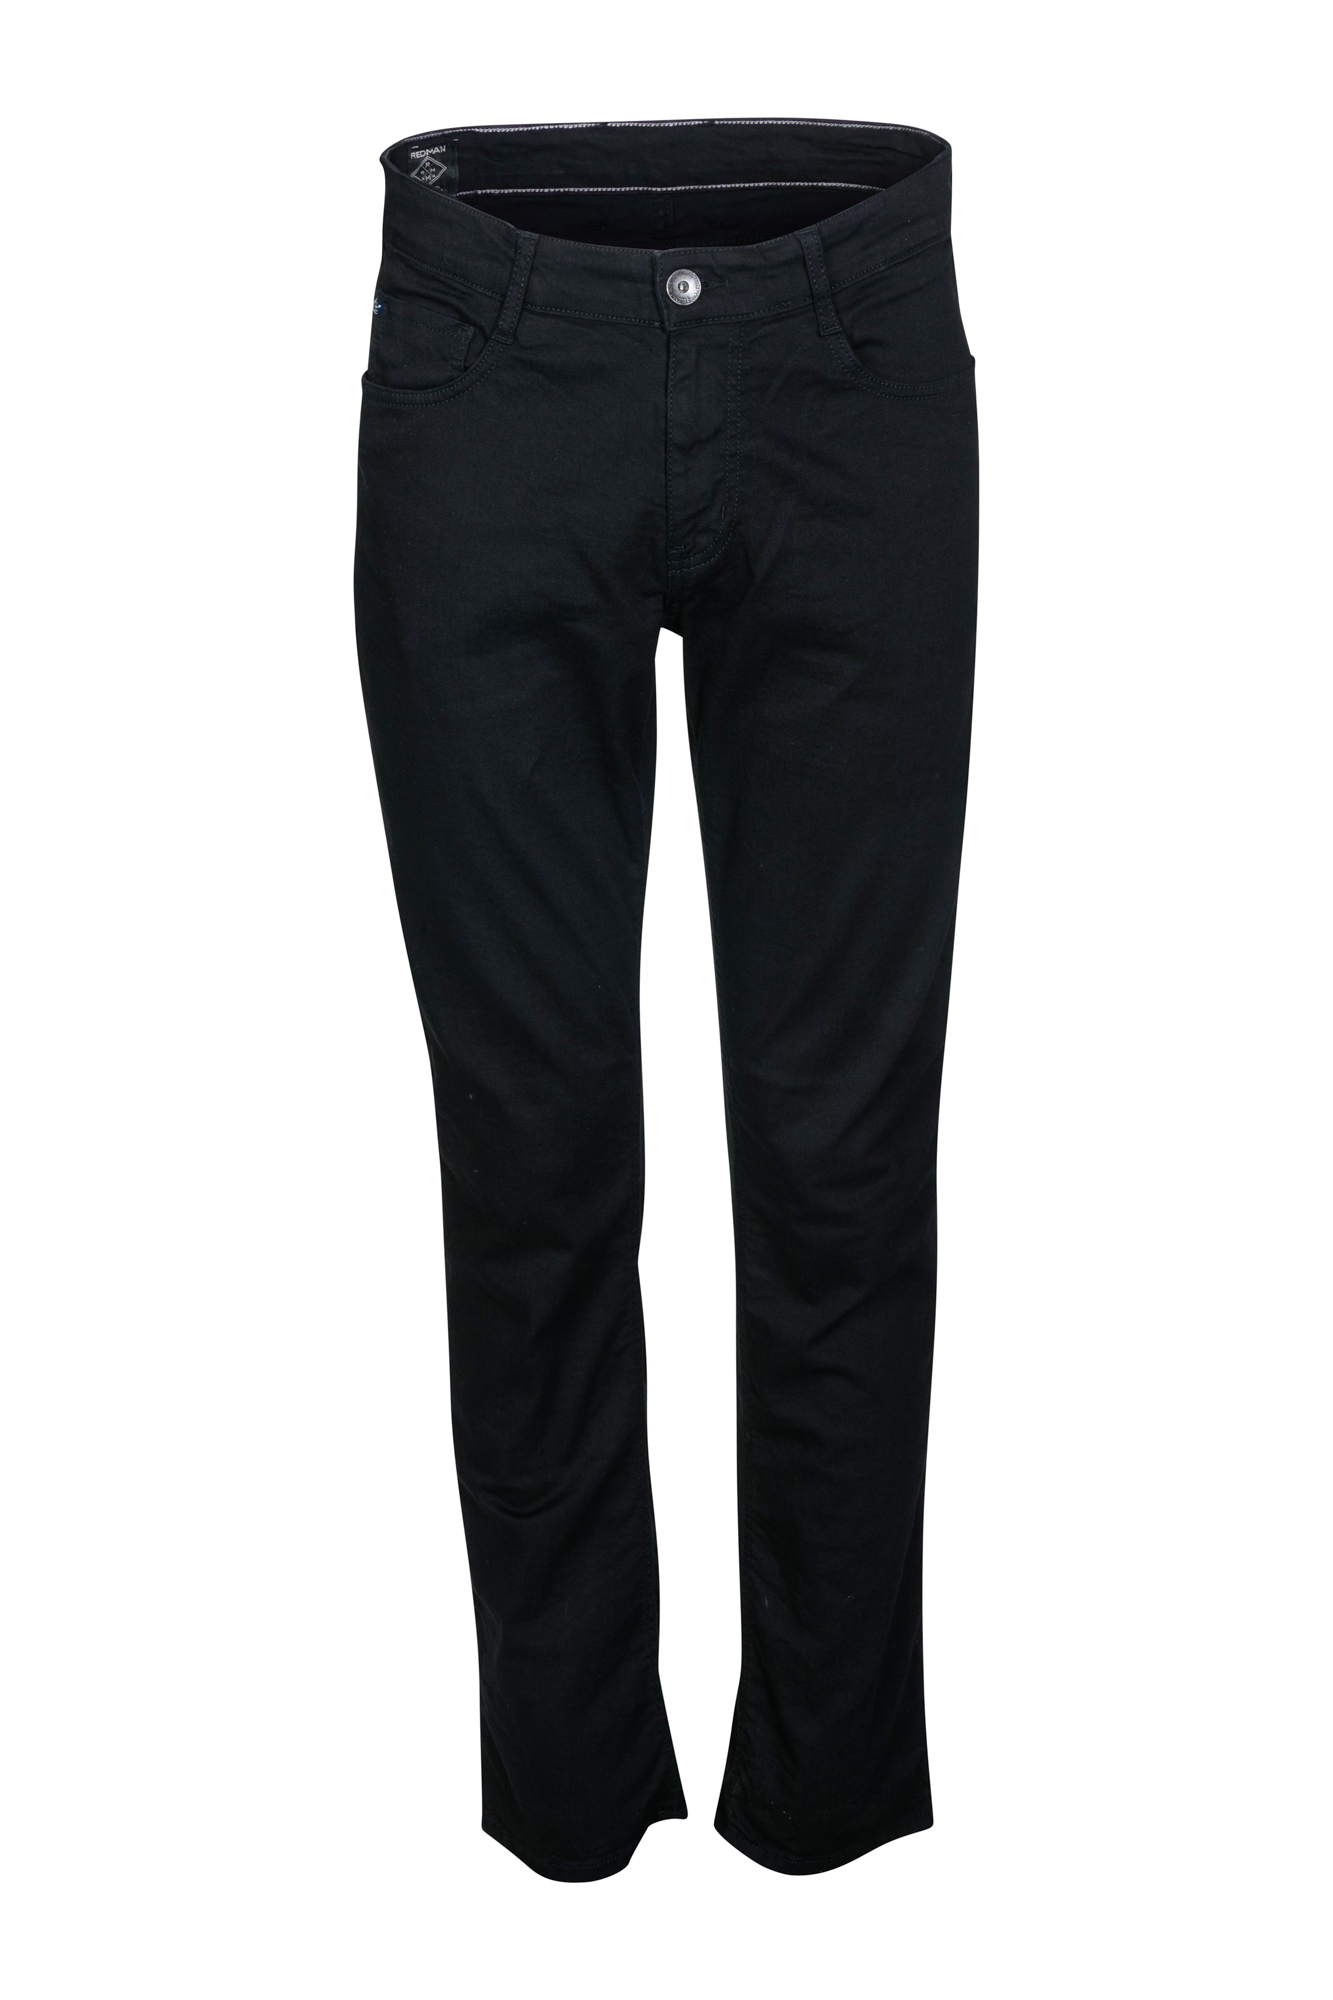 JEANS HOMME REDMAN MATHIEU DENIM BLACK BLACK(1).jpg